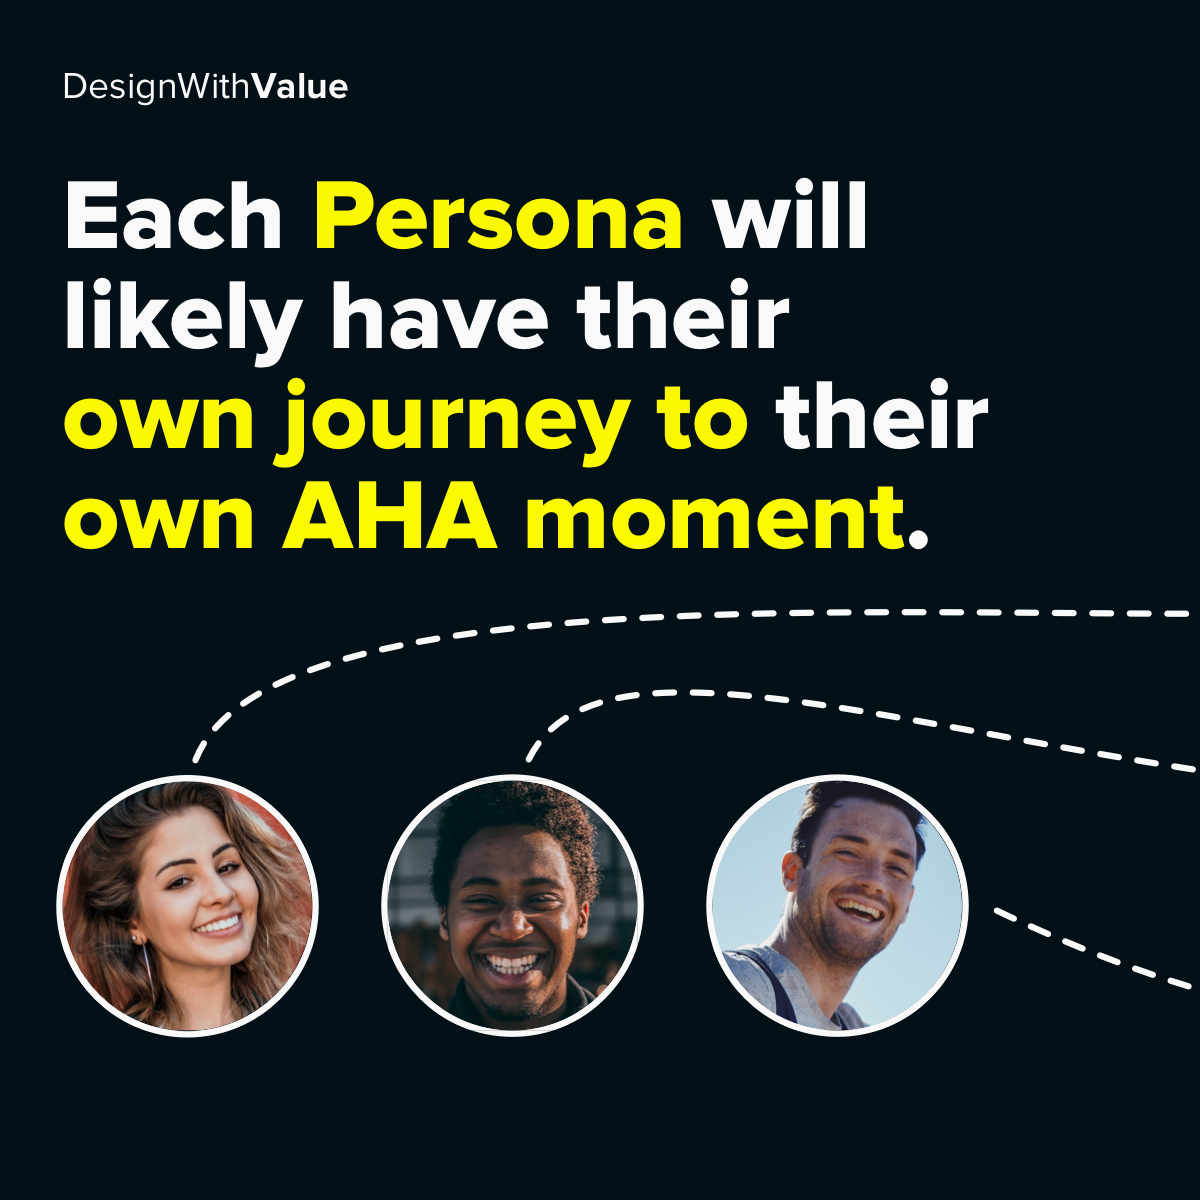 Each persona will likely have their own journey to their own AHA moment.